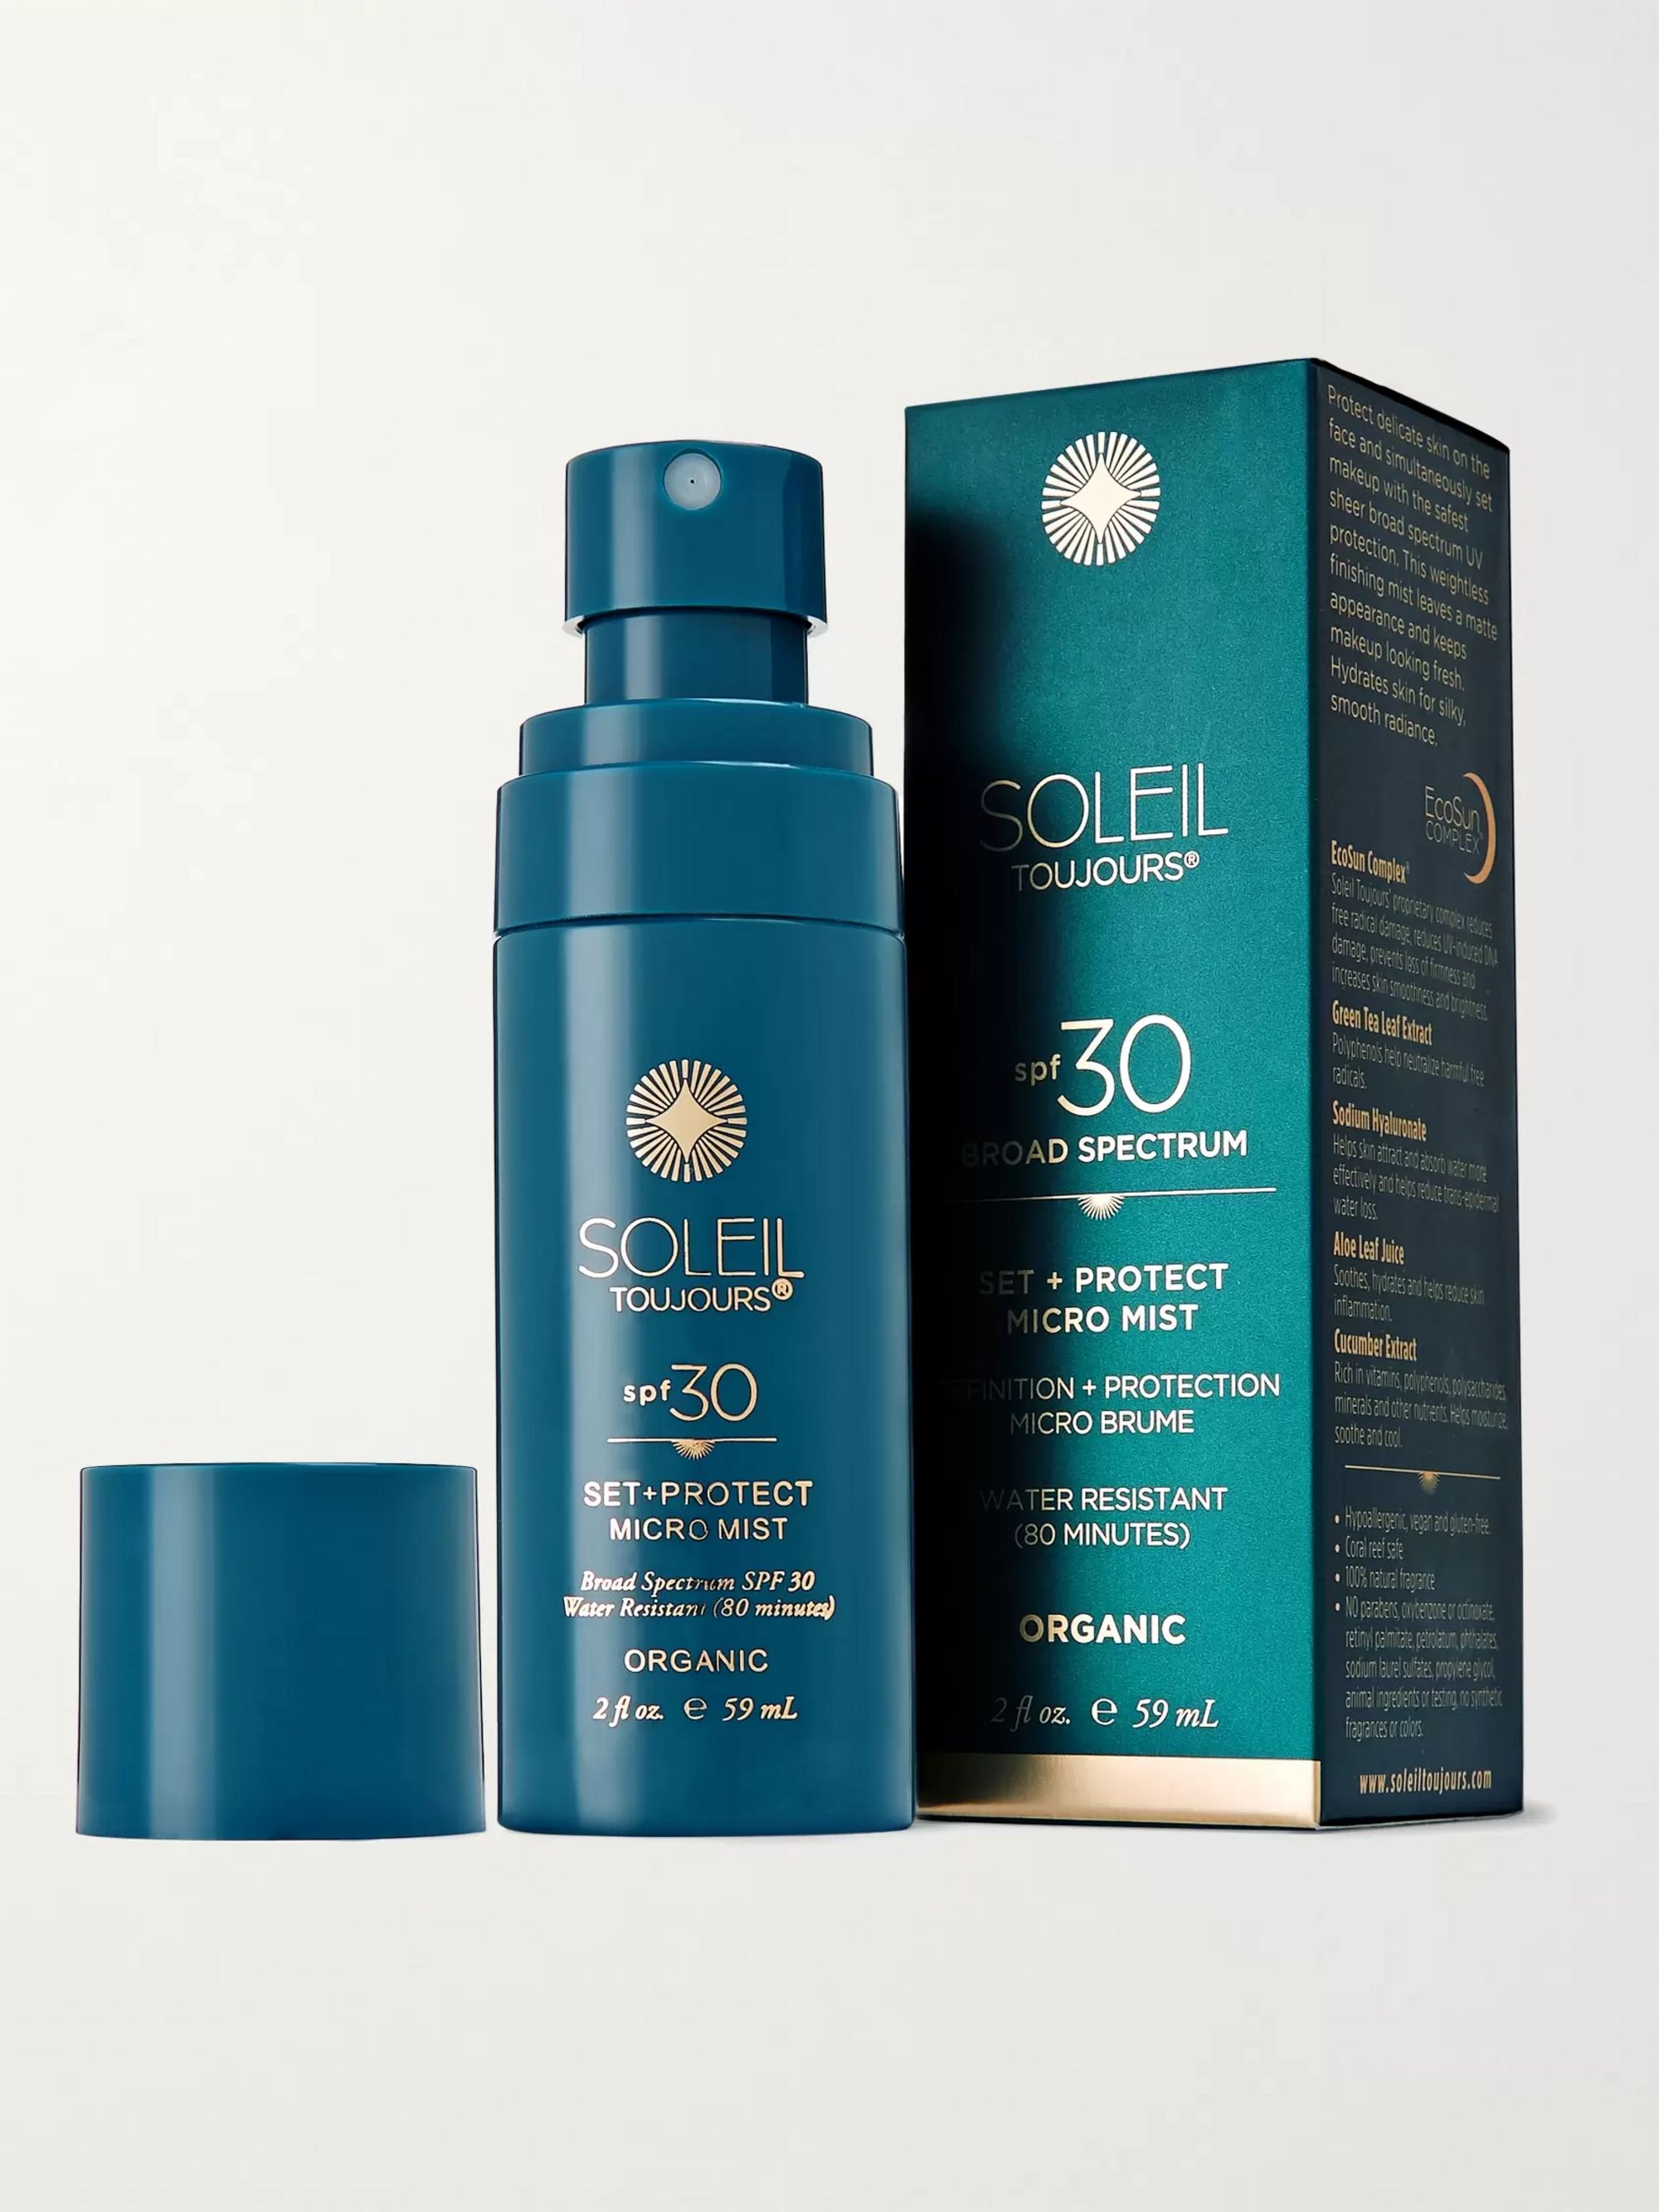 Soleil Toujours Organic Set + Protect Micro Mist SPF30, 59ml